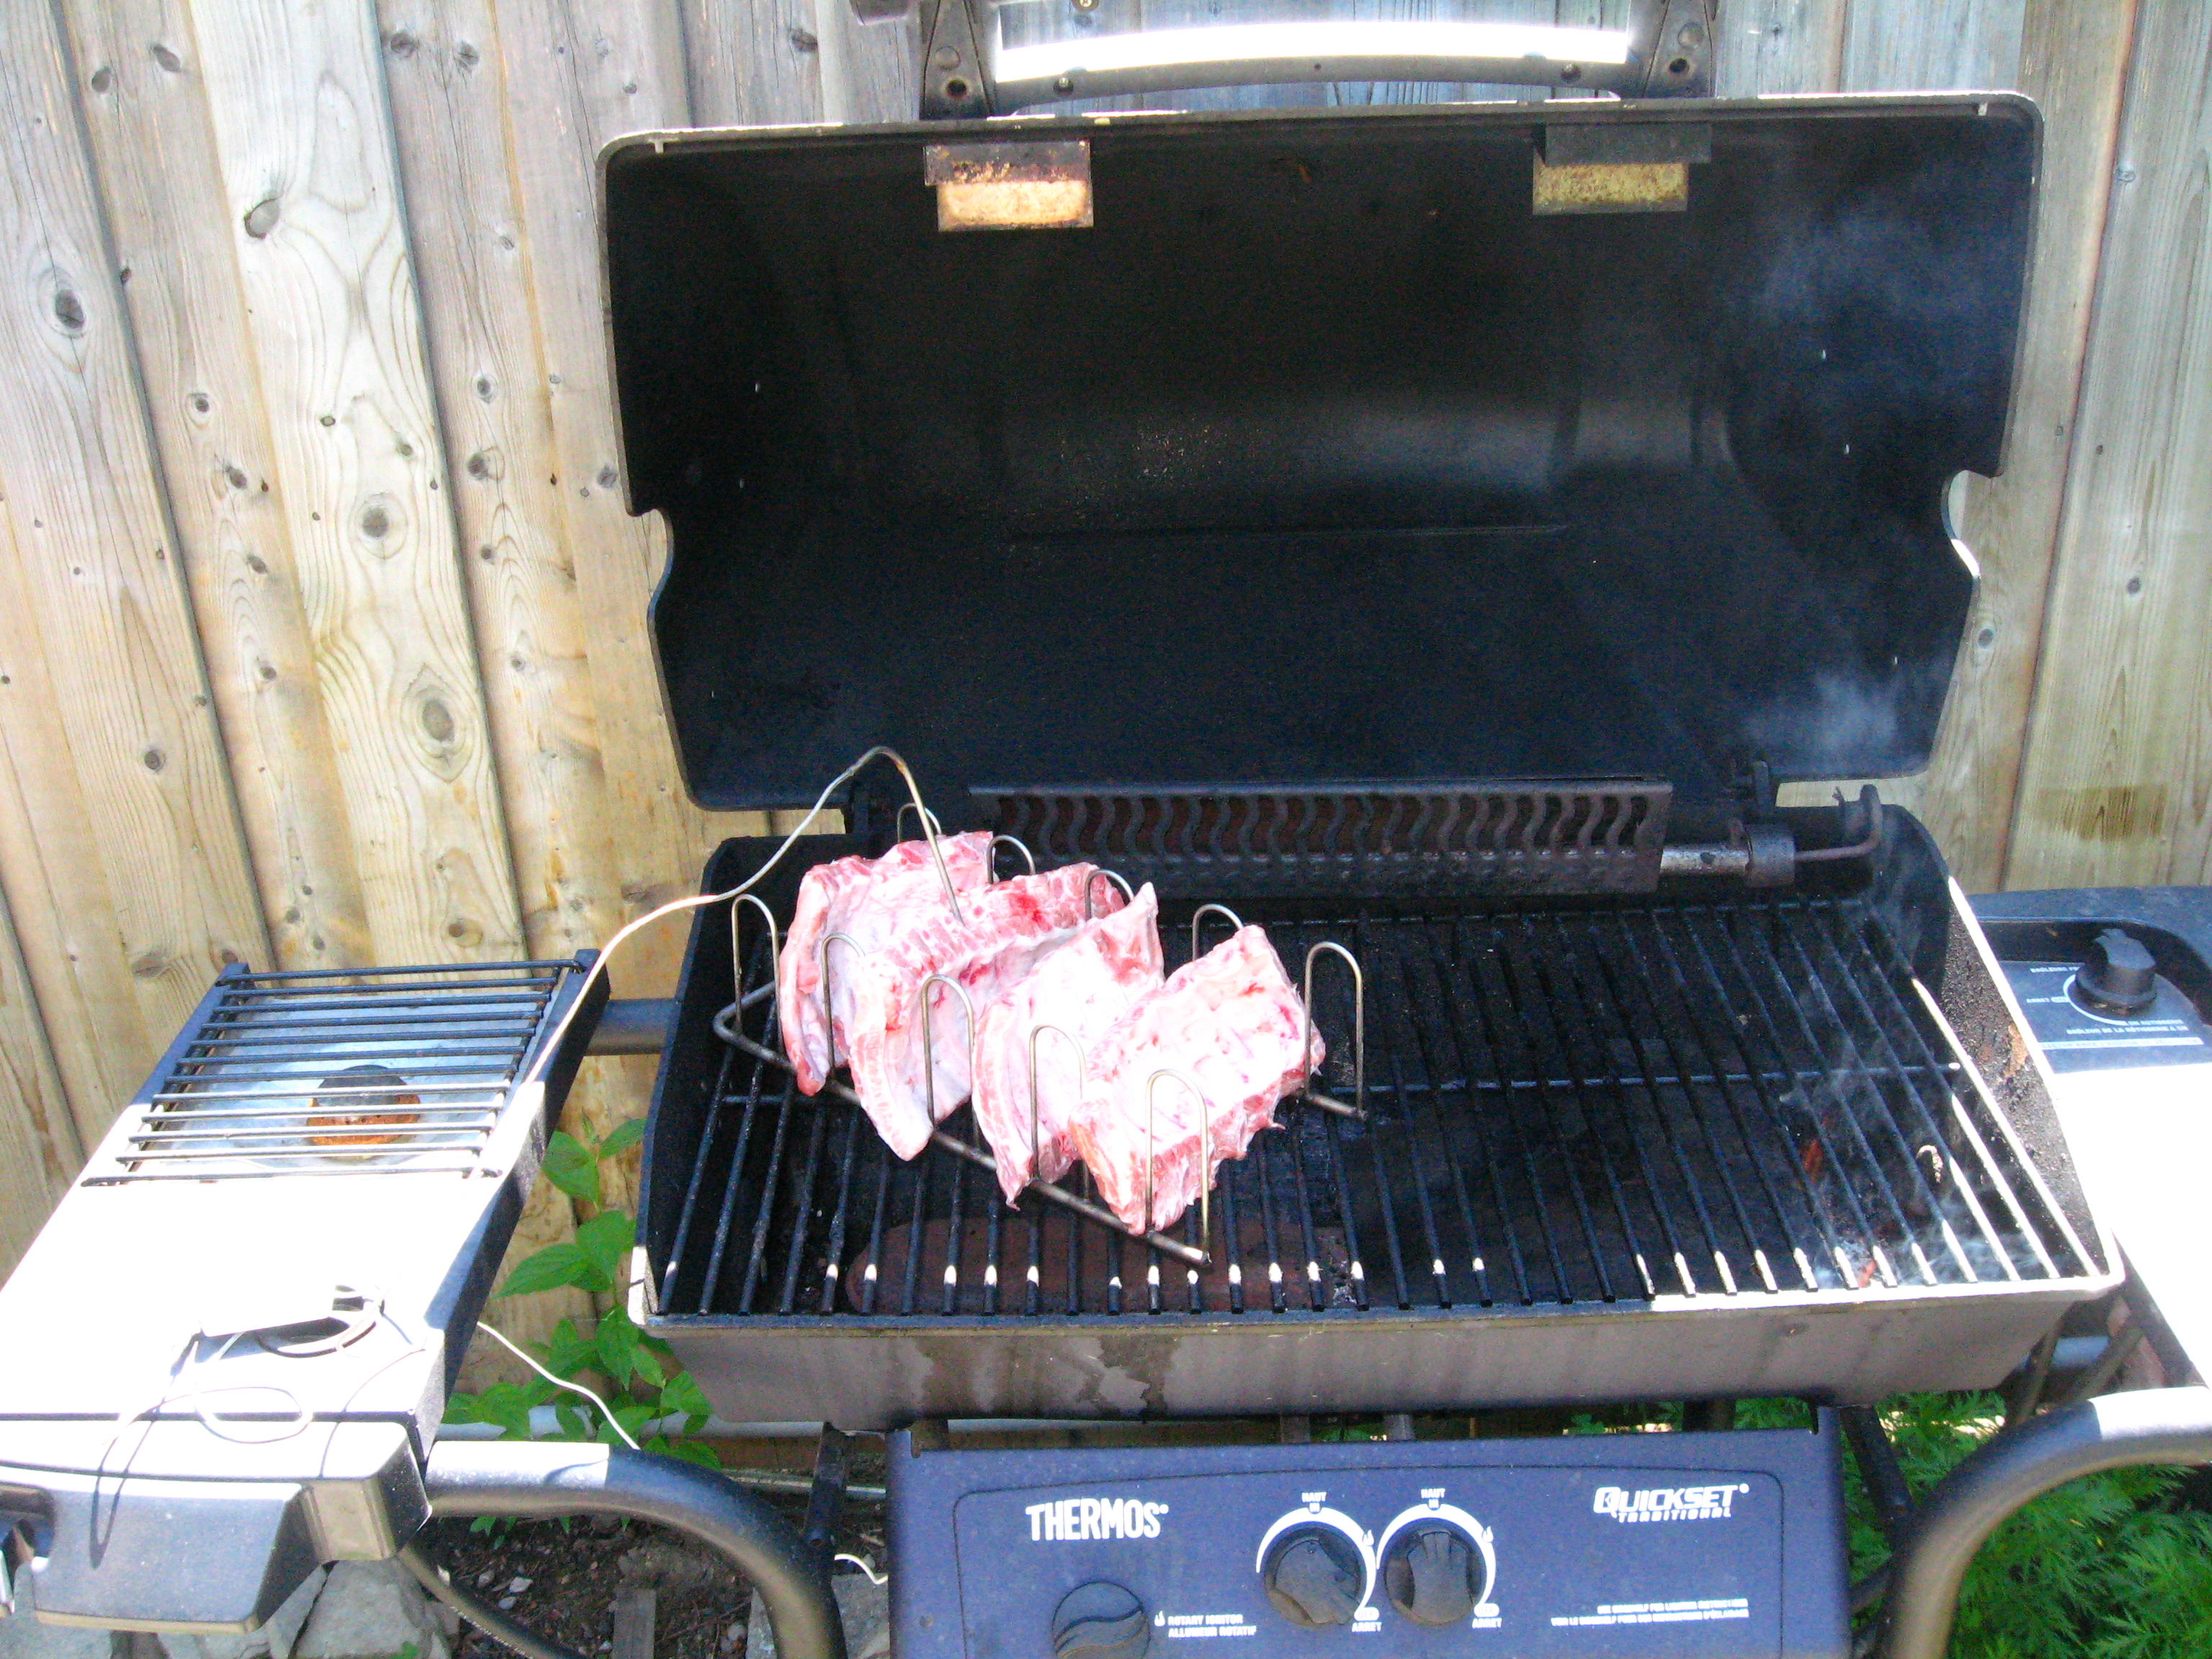 Be a BBQ Hero - slow cooking, smoking, heat shields and sauce bars